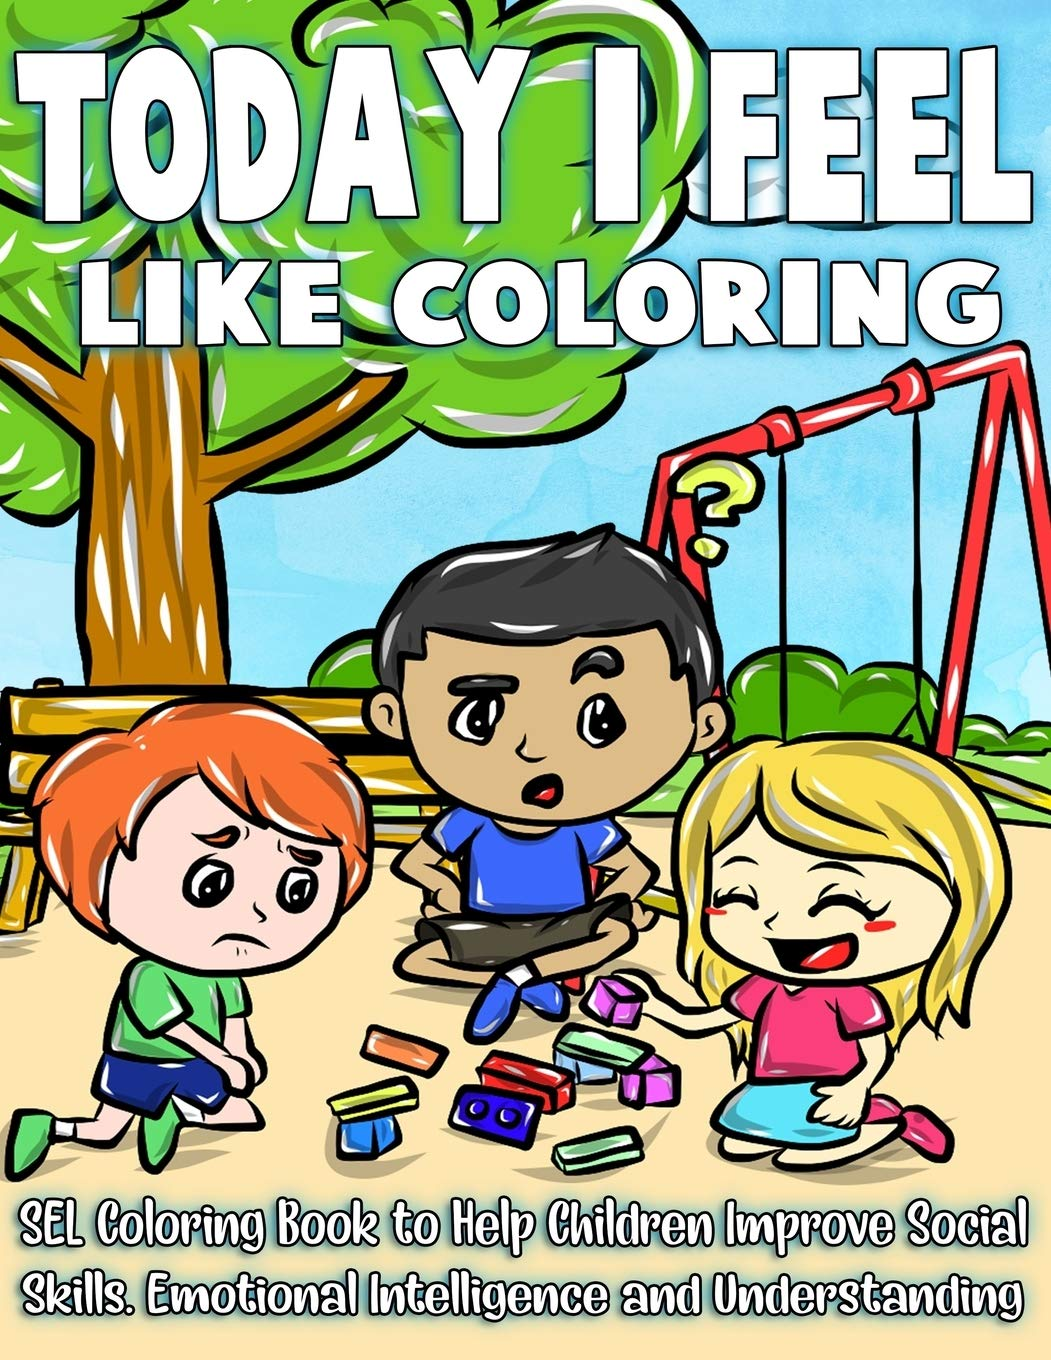 Today I Feel Like Coloring Dealing With Feelings And The Commotion Of Emotions Can Be Overwhelming A Sel Coloring Book For Parents And Therapists Emotional Intelligence And Understanding Red Cape